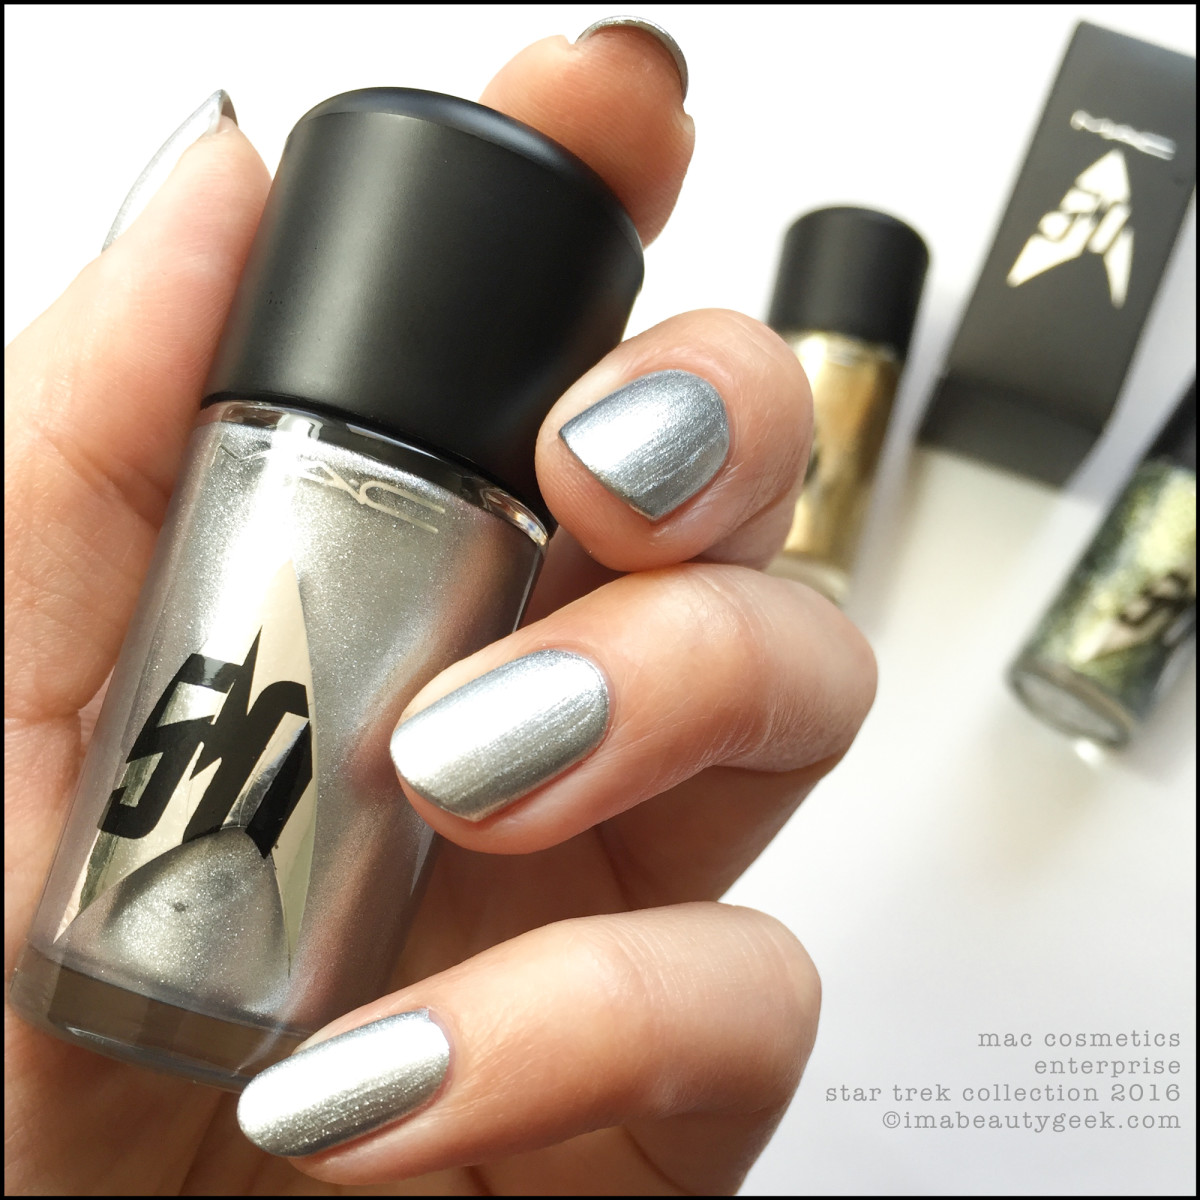 Mac Star Trek Collection Enterprise Nail Polish_MAC Cosmetics Star Trek Enterprise 2016